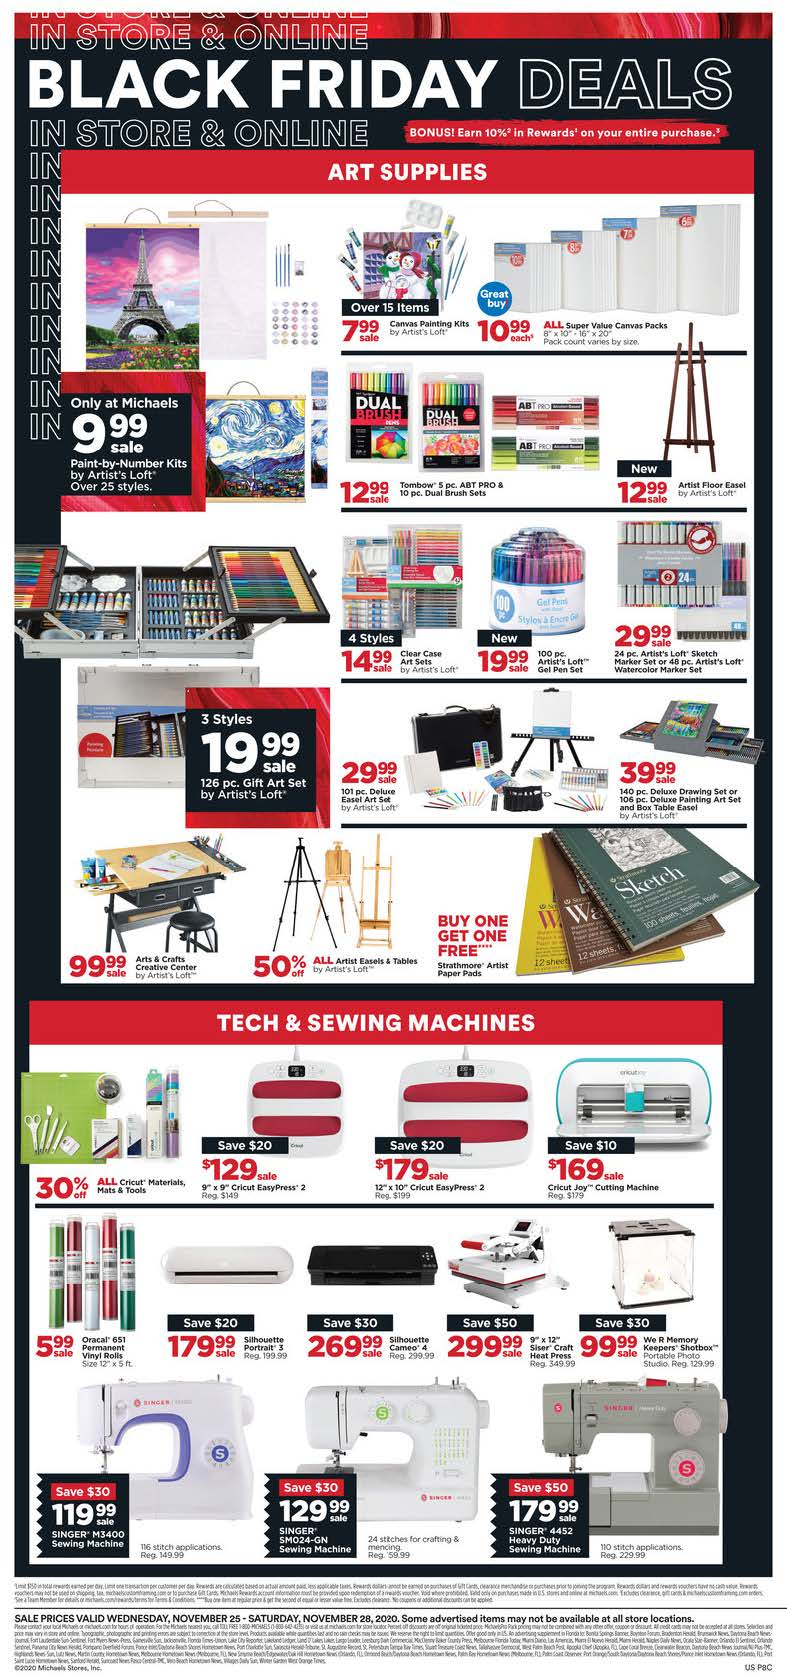 Michaels Black Friday 2020 Page 6